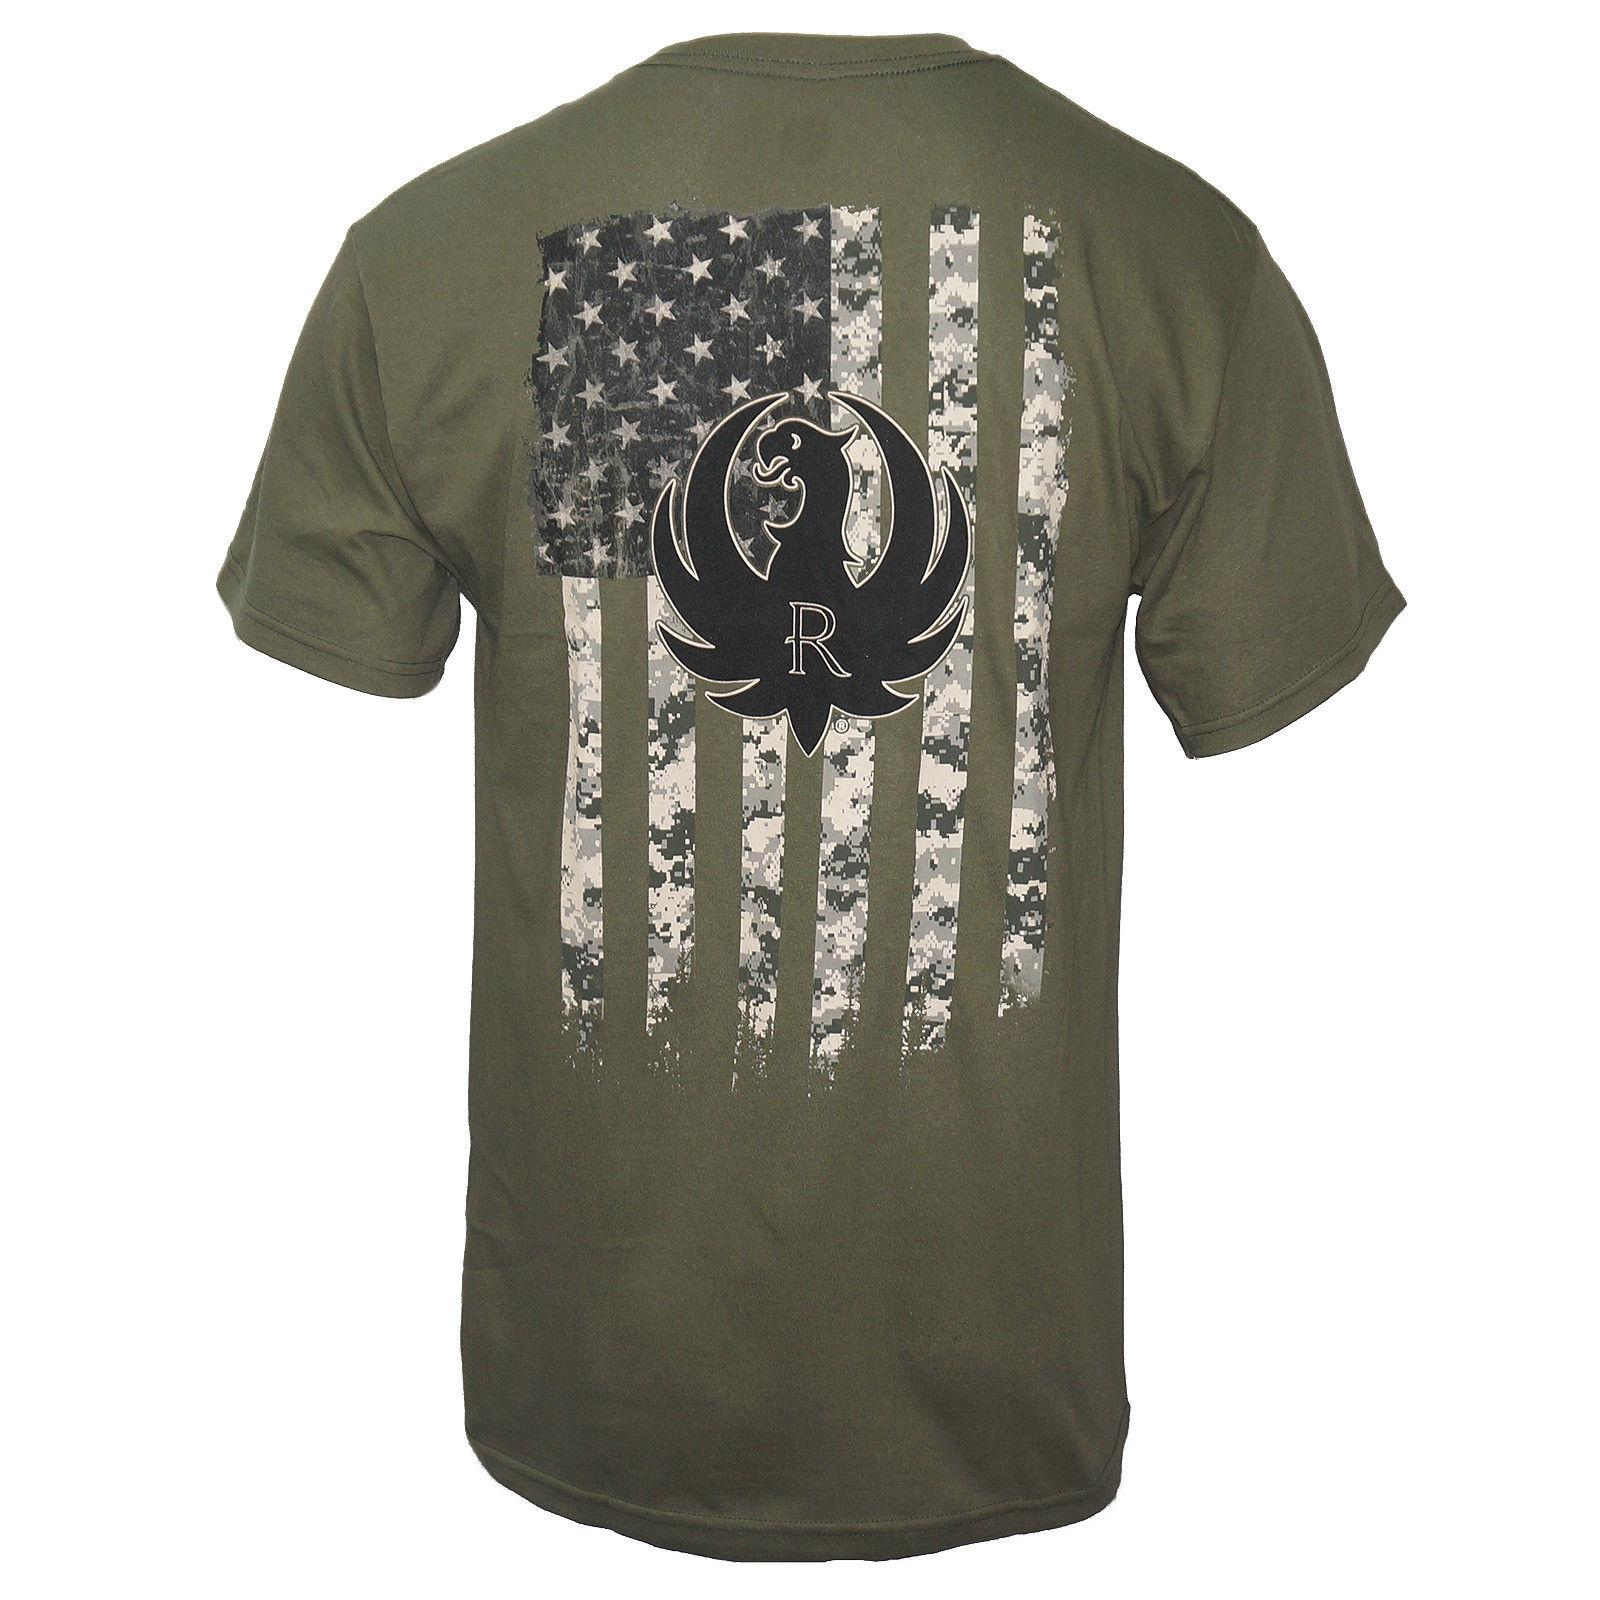 749dae9c Licensed RUGER Military Camo T Shirt Military Green S 3XL NEW Funny Unisex  Casual Gift Humor Tees Funny Tee From Free_will_shirts, $12.96| DHgate.Com